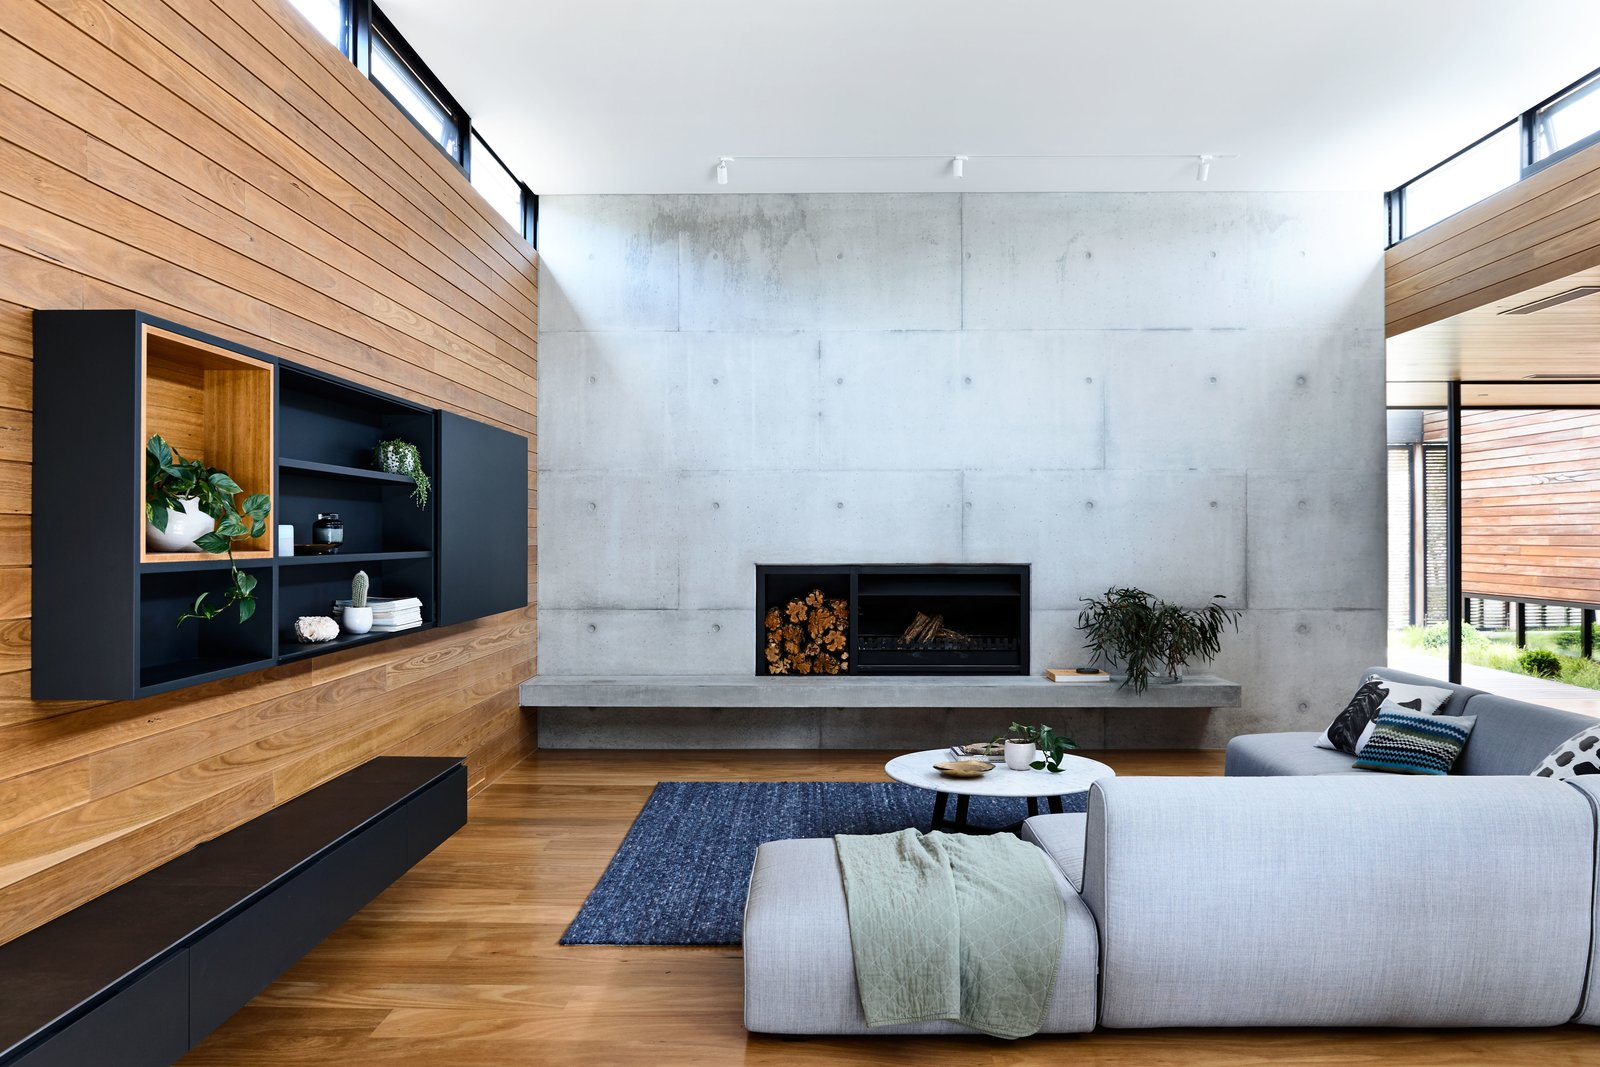 """Living Room, Sofa, Medium Hardwood Floor, Wood Burning Fireplace, and Track Lighting """"The bold concrete forms [in DS House] create a blank backdrop for the reinstatement of the indigenous landscape after bushfires...triggered a requirement for the majority of the vegetation to be removed,  DS House, Blairgowrie"""